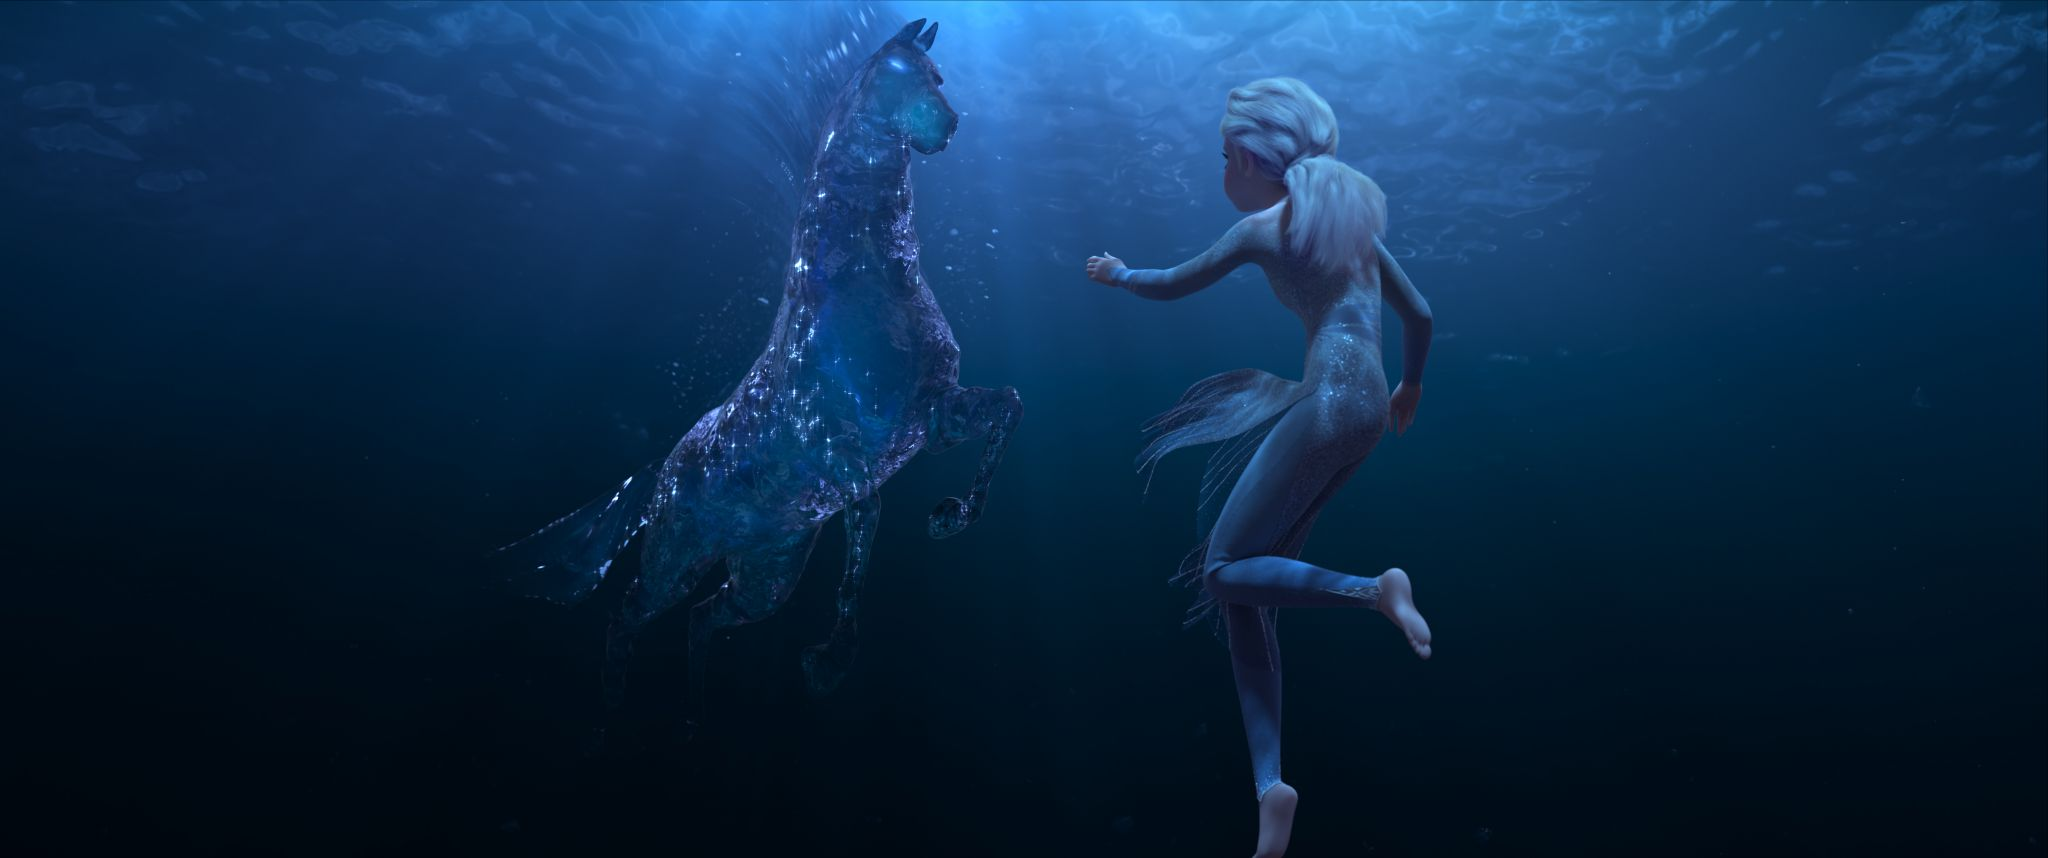 "In Walt Disney Animation Studios' ""Frozen 2, Elsa encounters a Nokk—a mythical water spirit that takes the form of a horse—who uses the power of the ocean to guard the secrets of the forest."